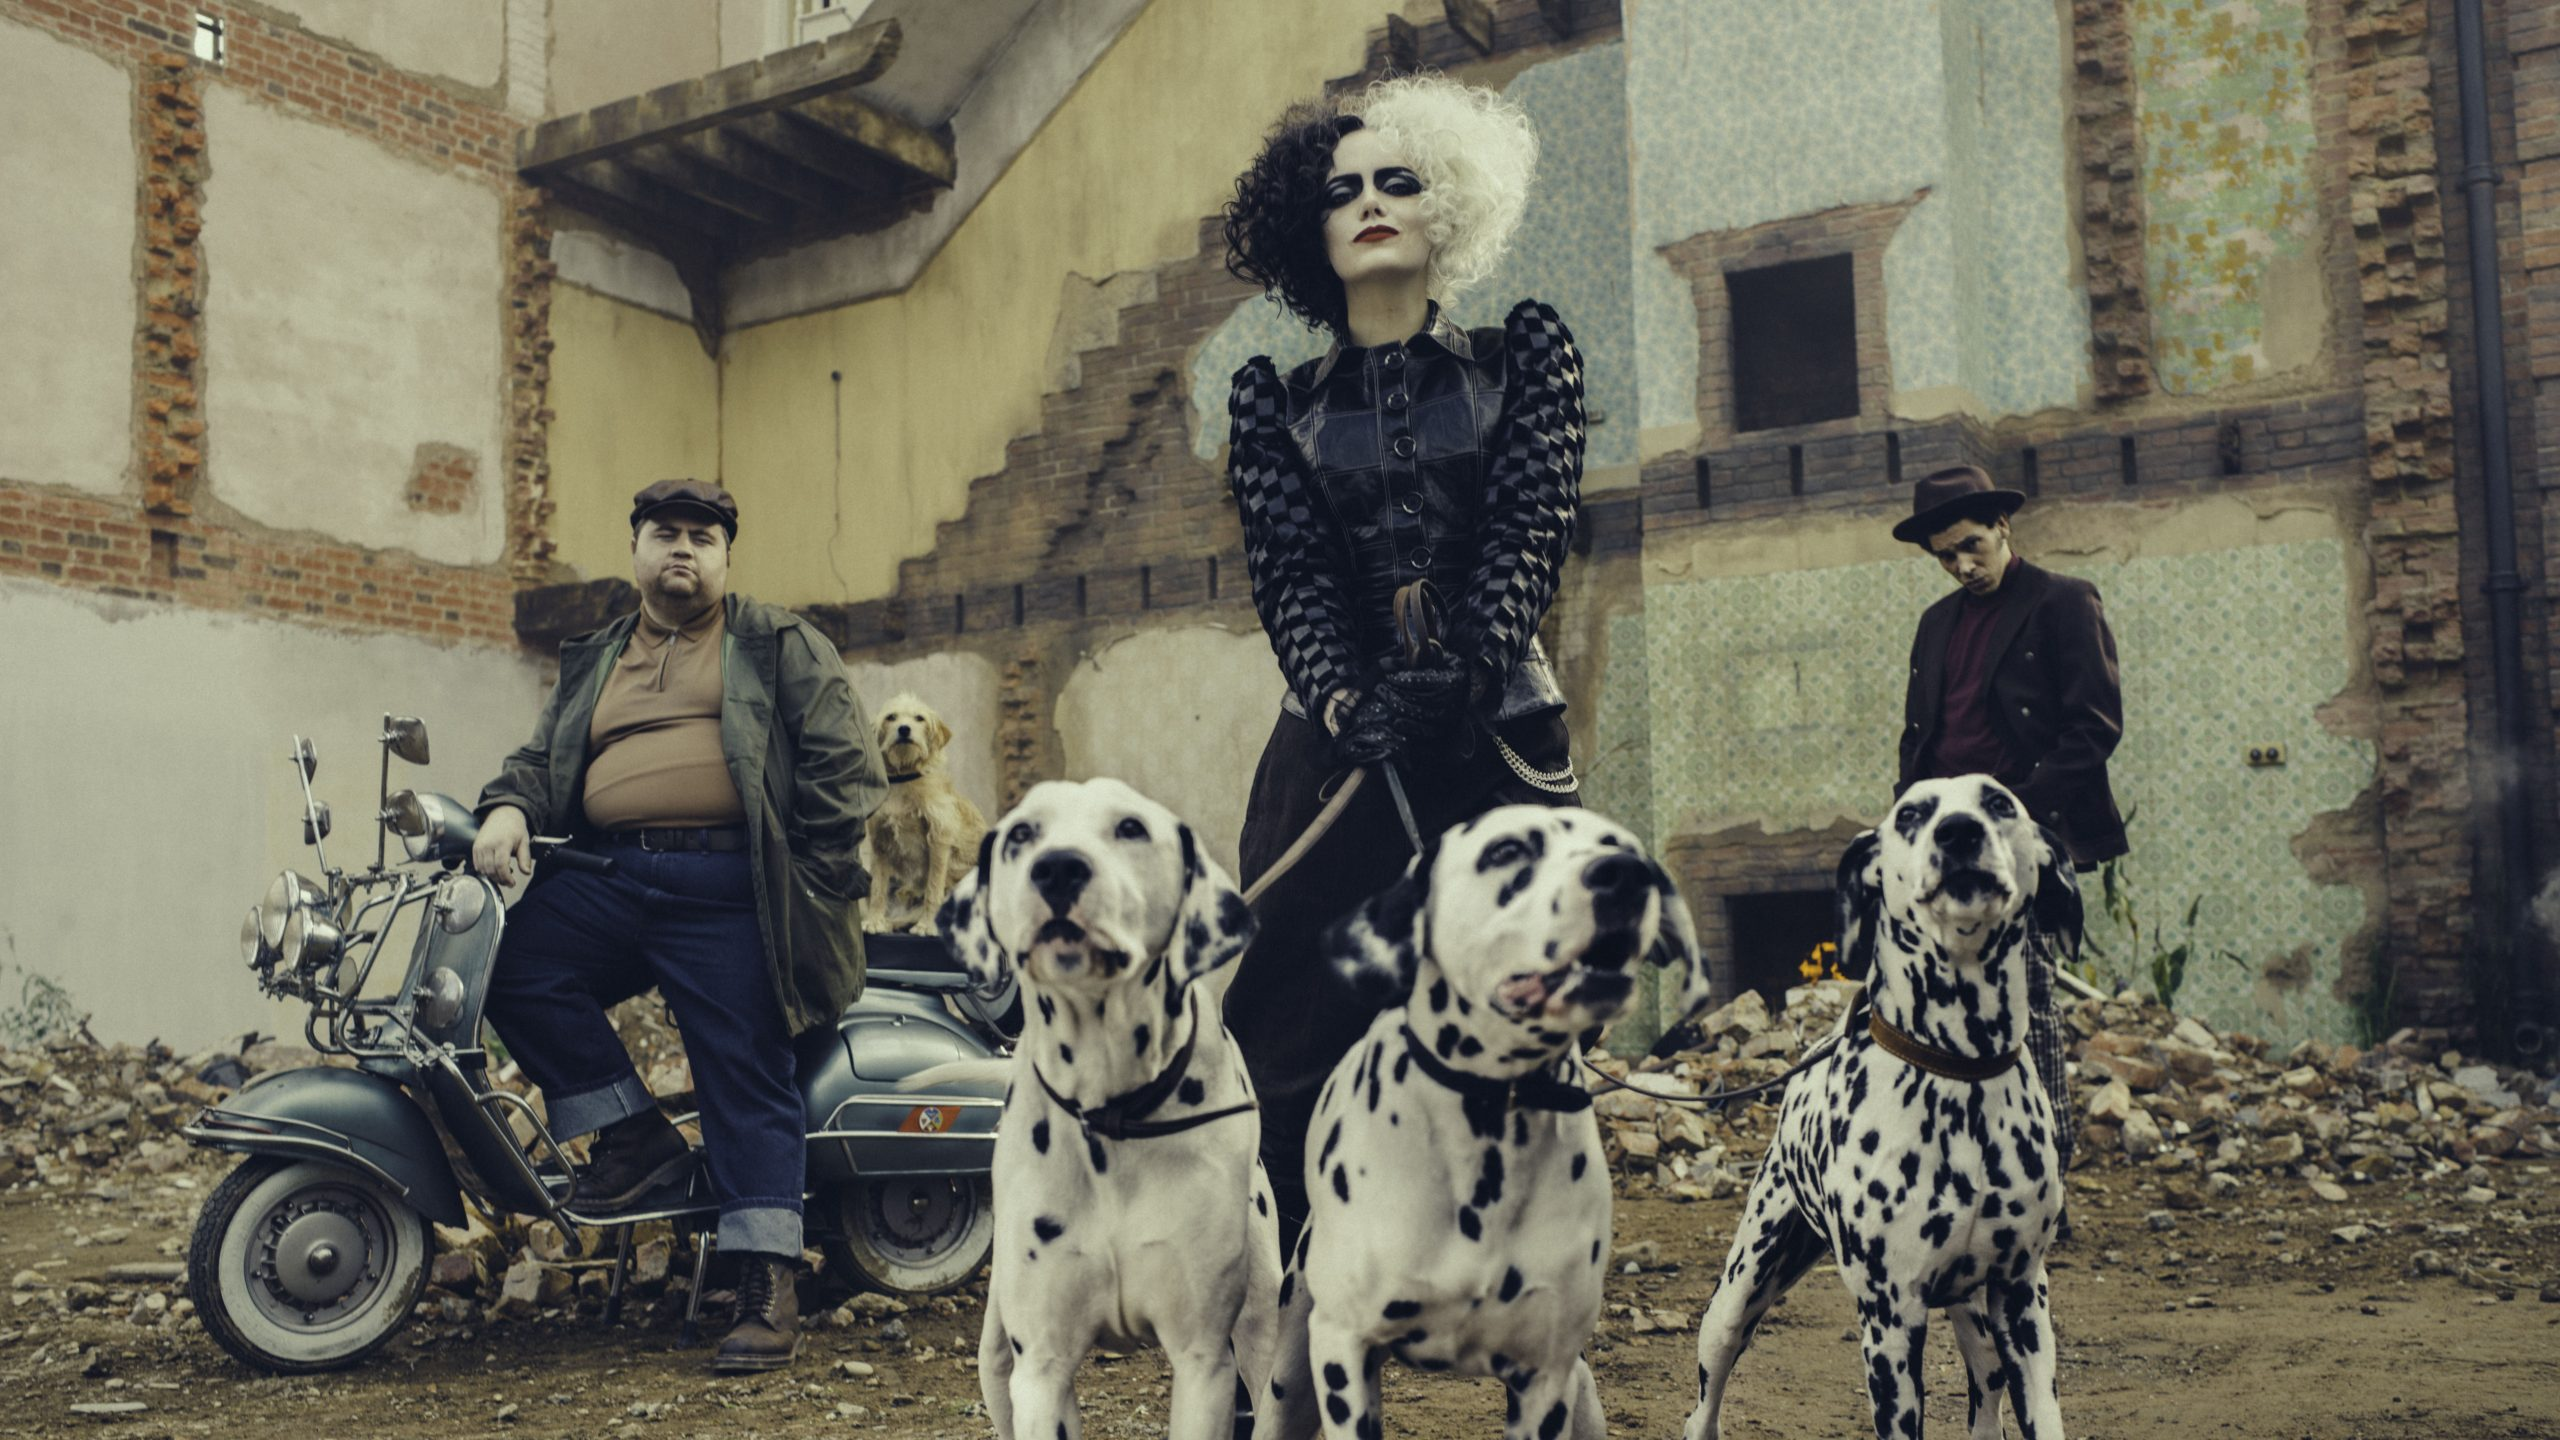 Put it on your Disney Movies List: Cruella